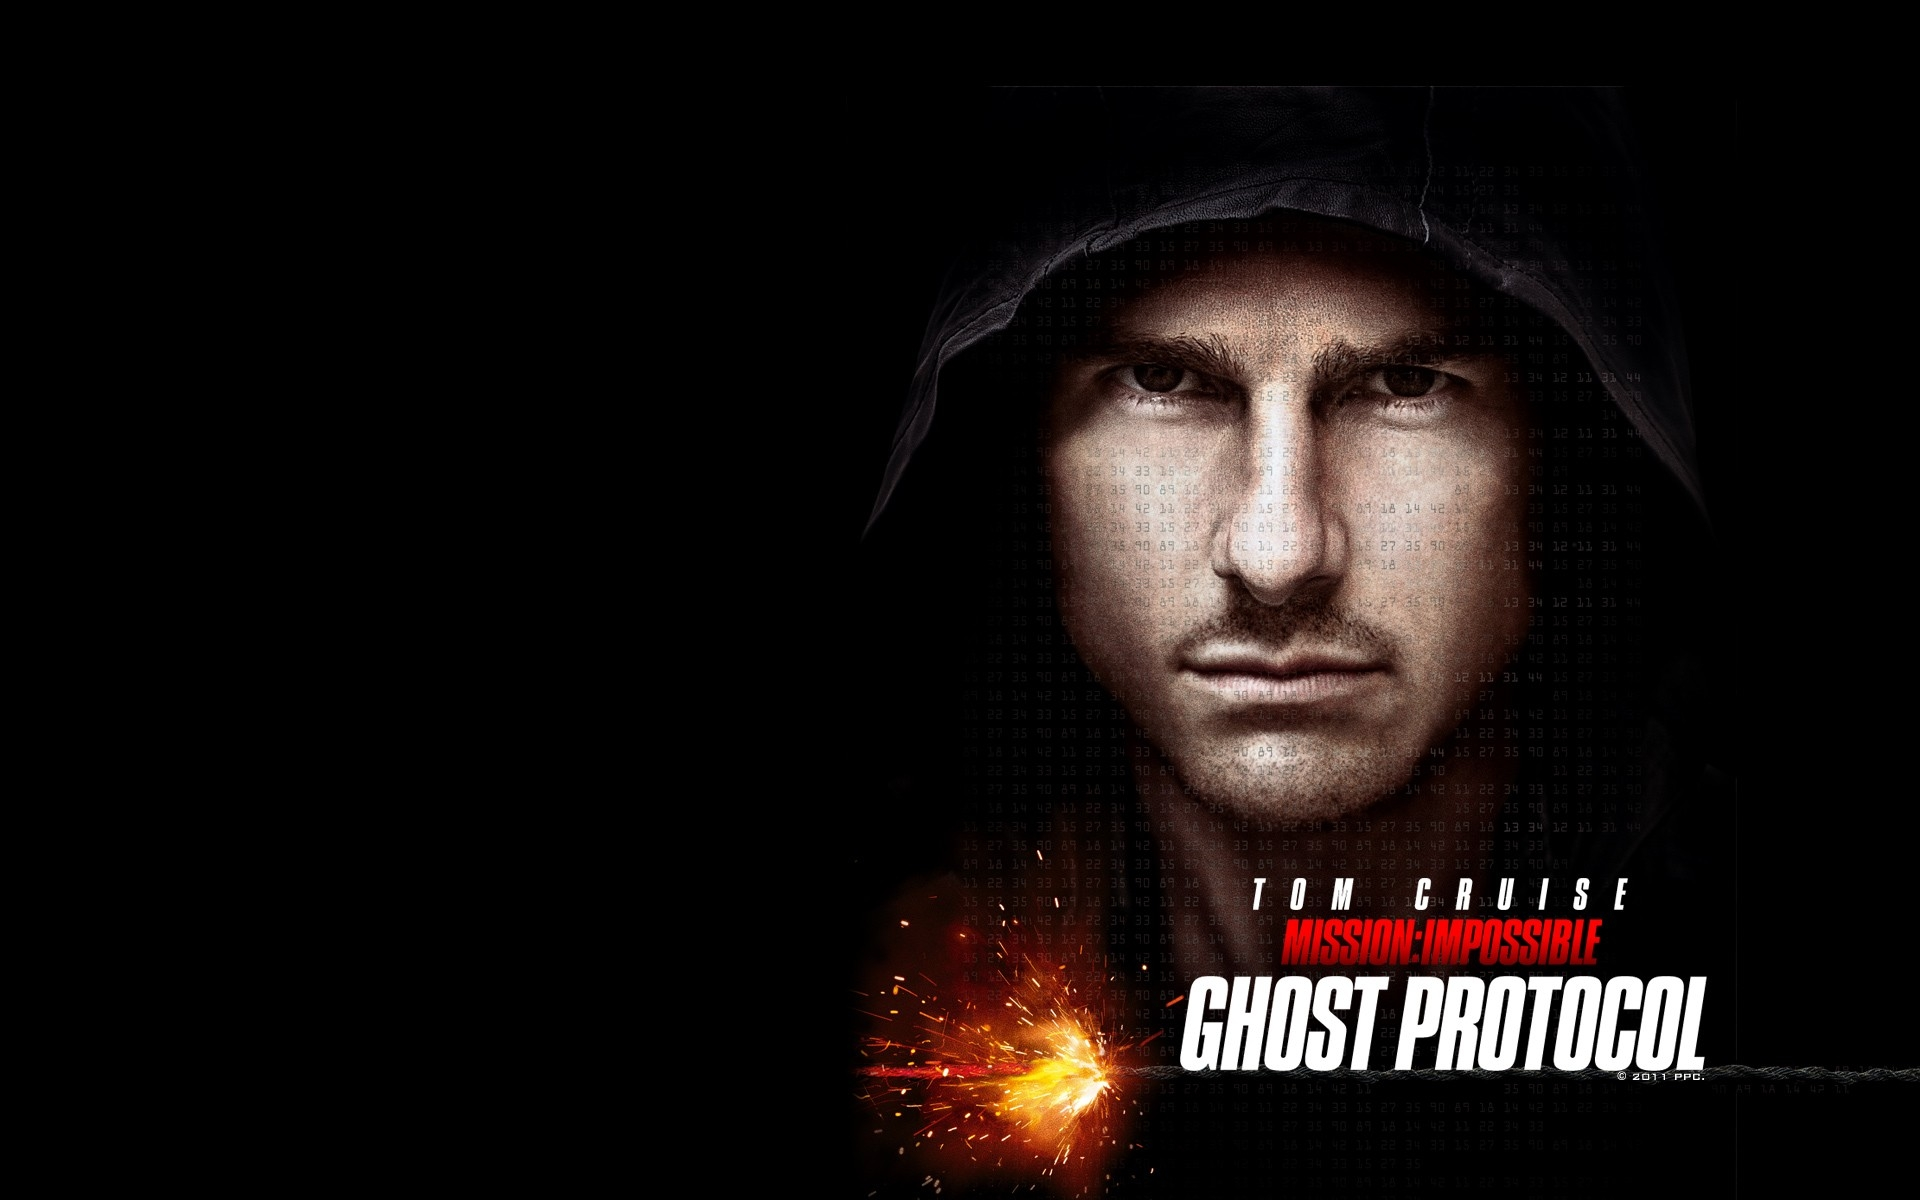 mission impossible ghost protocol computer wallpapers